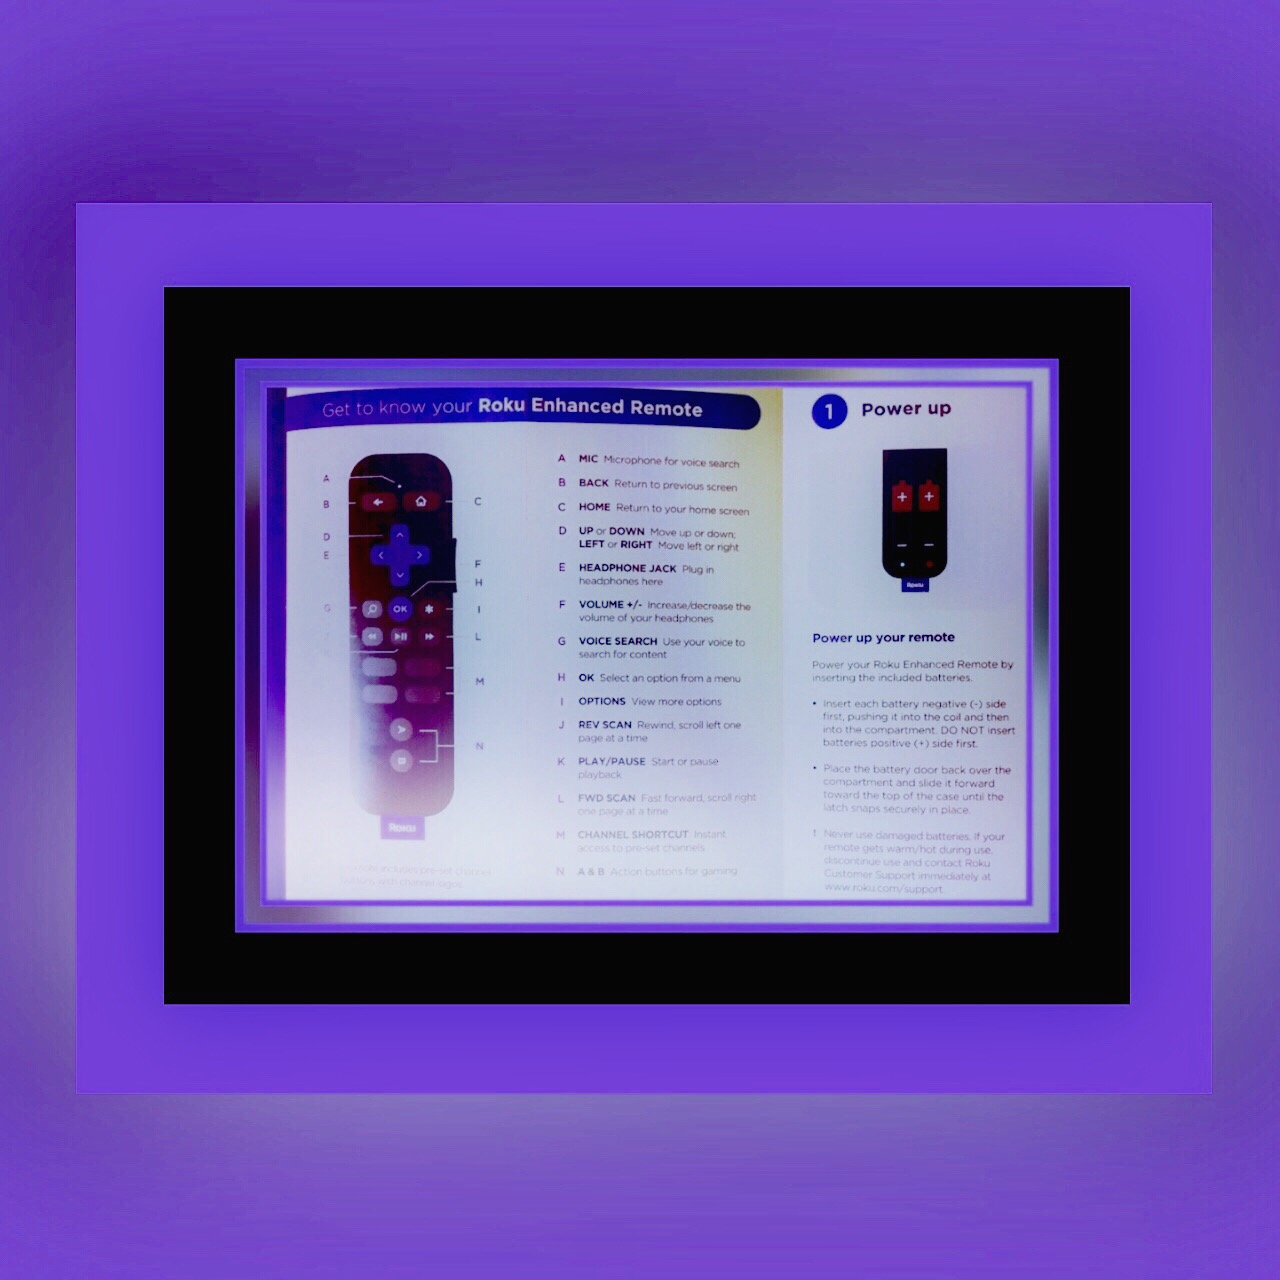 how to pair a second roku remote use voice search vsatips. Black Bedroom Furniture Sets. Home Design Ideas